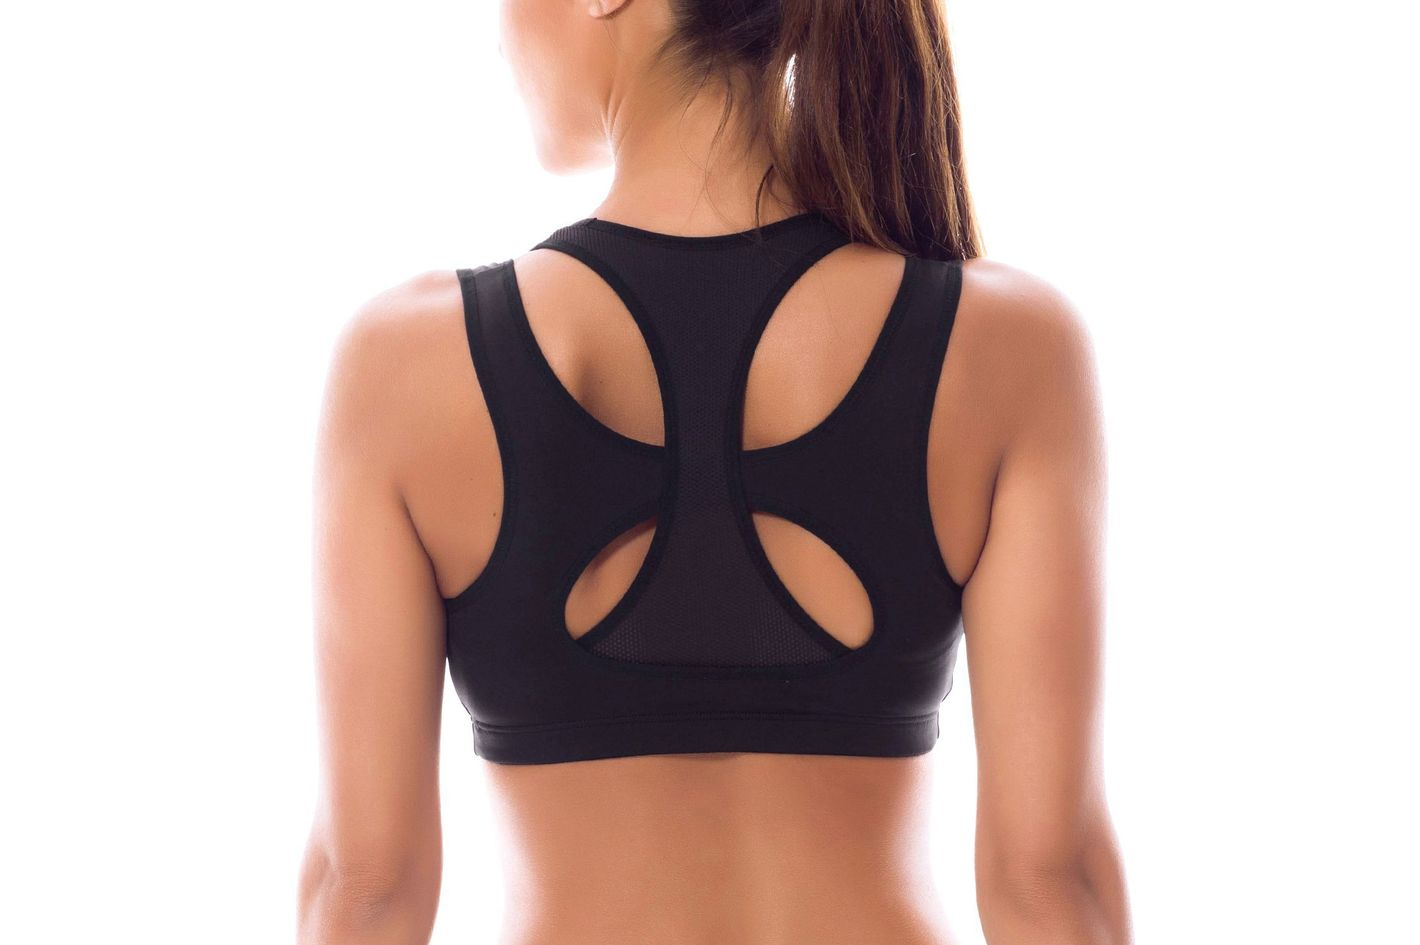 19cc7948b2 SYROKAN Women s High Impact Support Wirefree Workout Racerback Sports Bra  Top